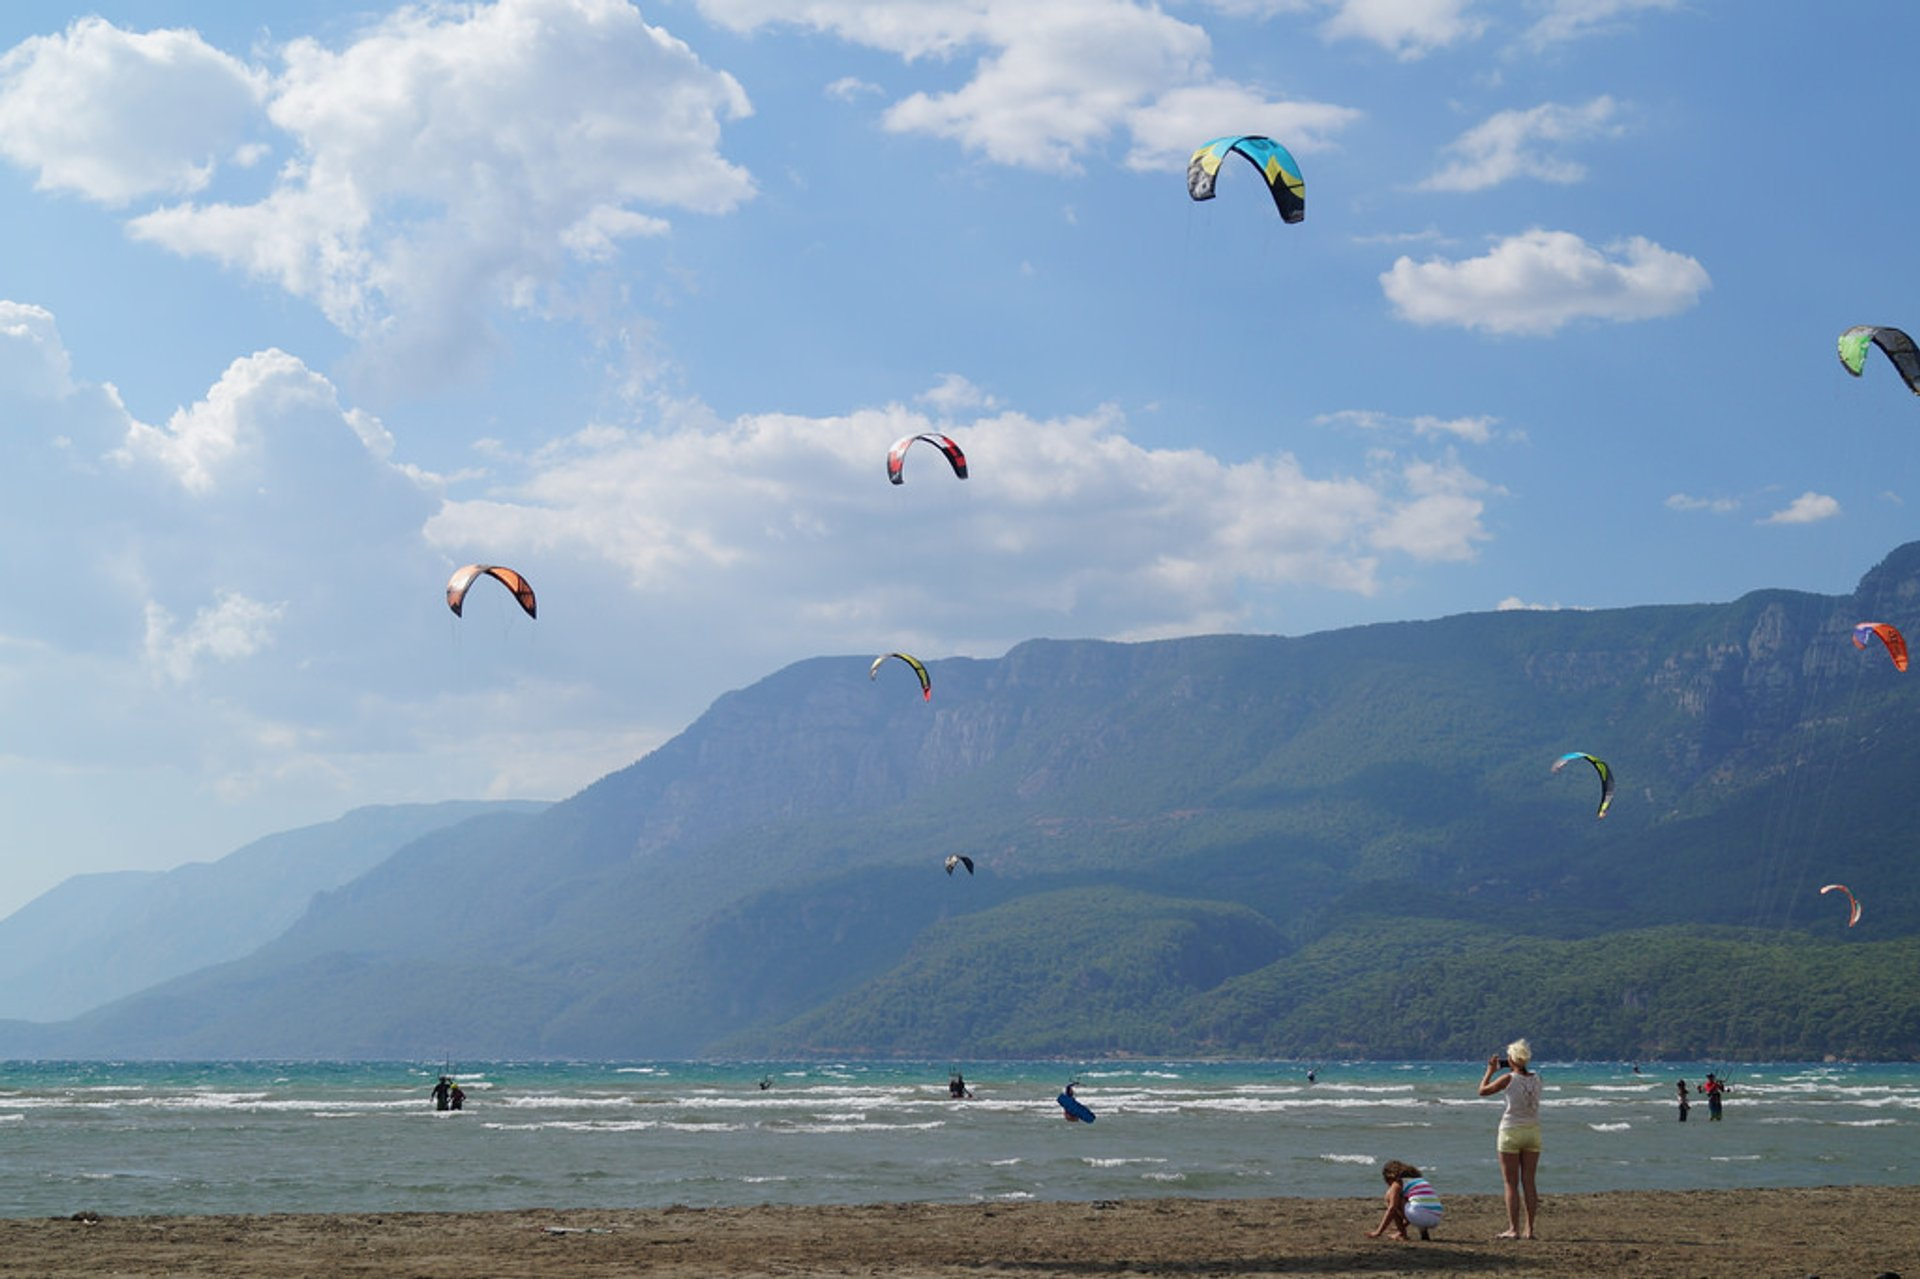 Kiteboarding in Turkey 2020 - Best Time